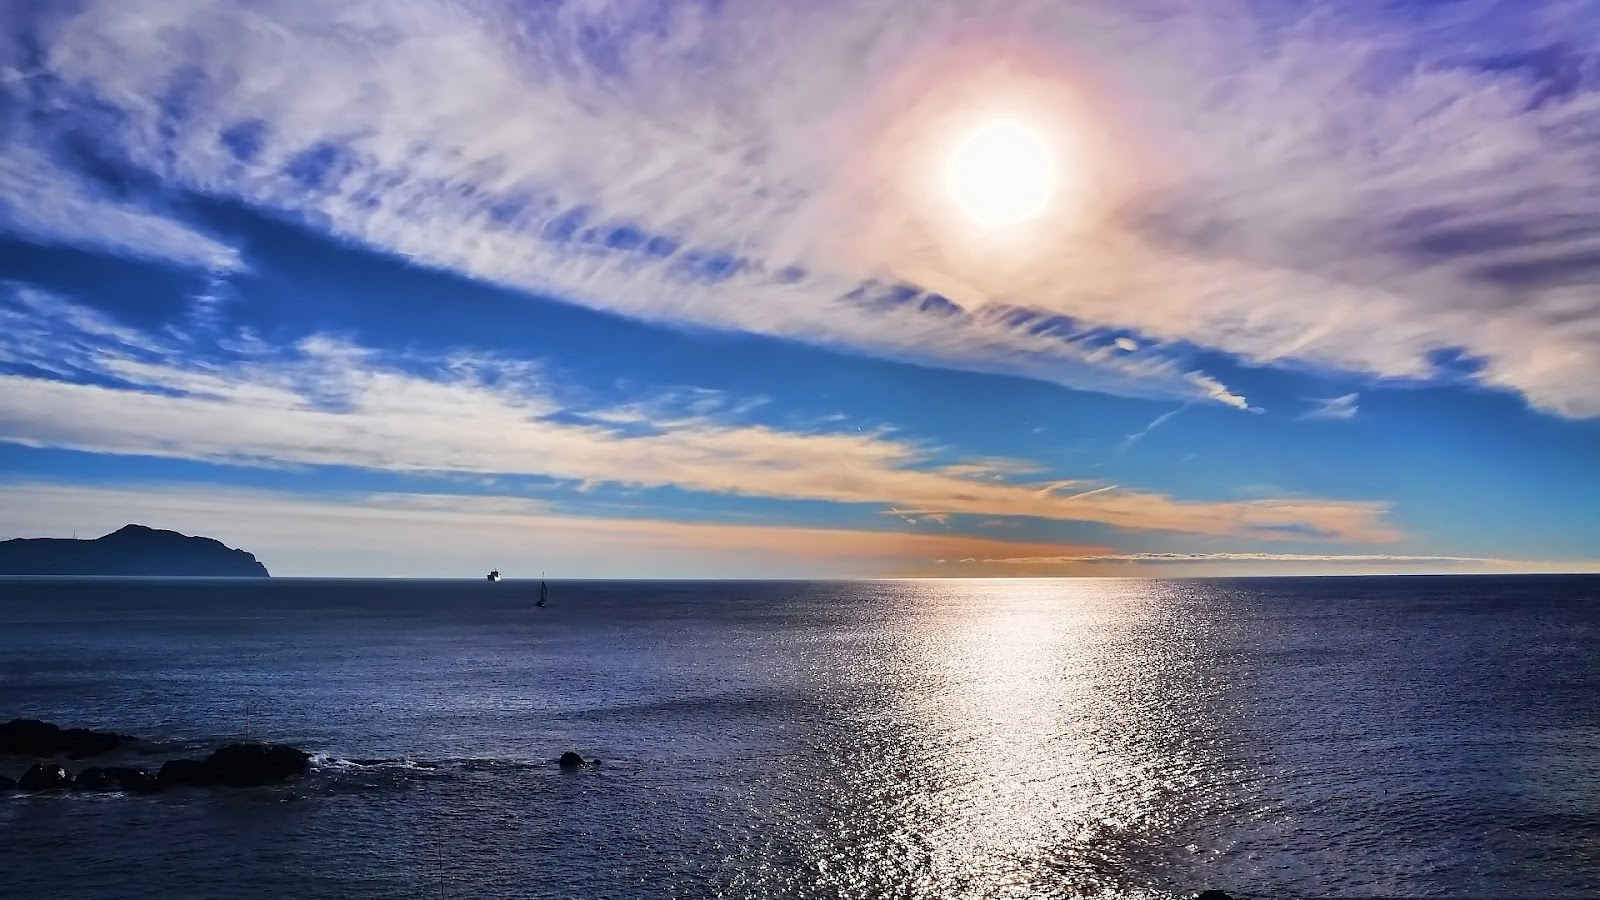 seascape full HD nature background wallpaper for laptop widescreenjpg 1600x900